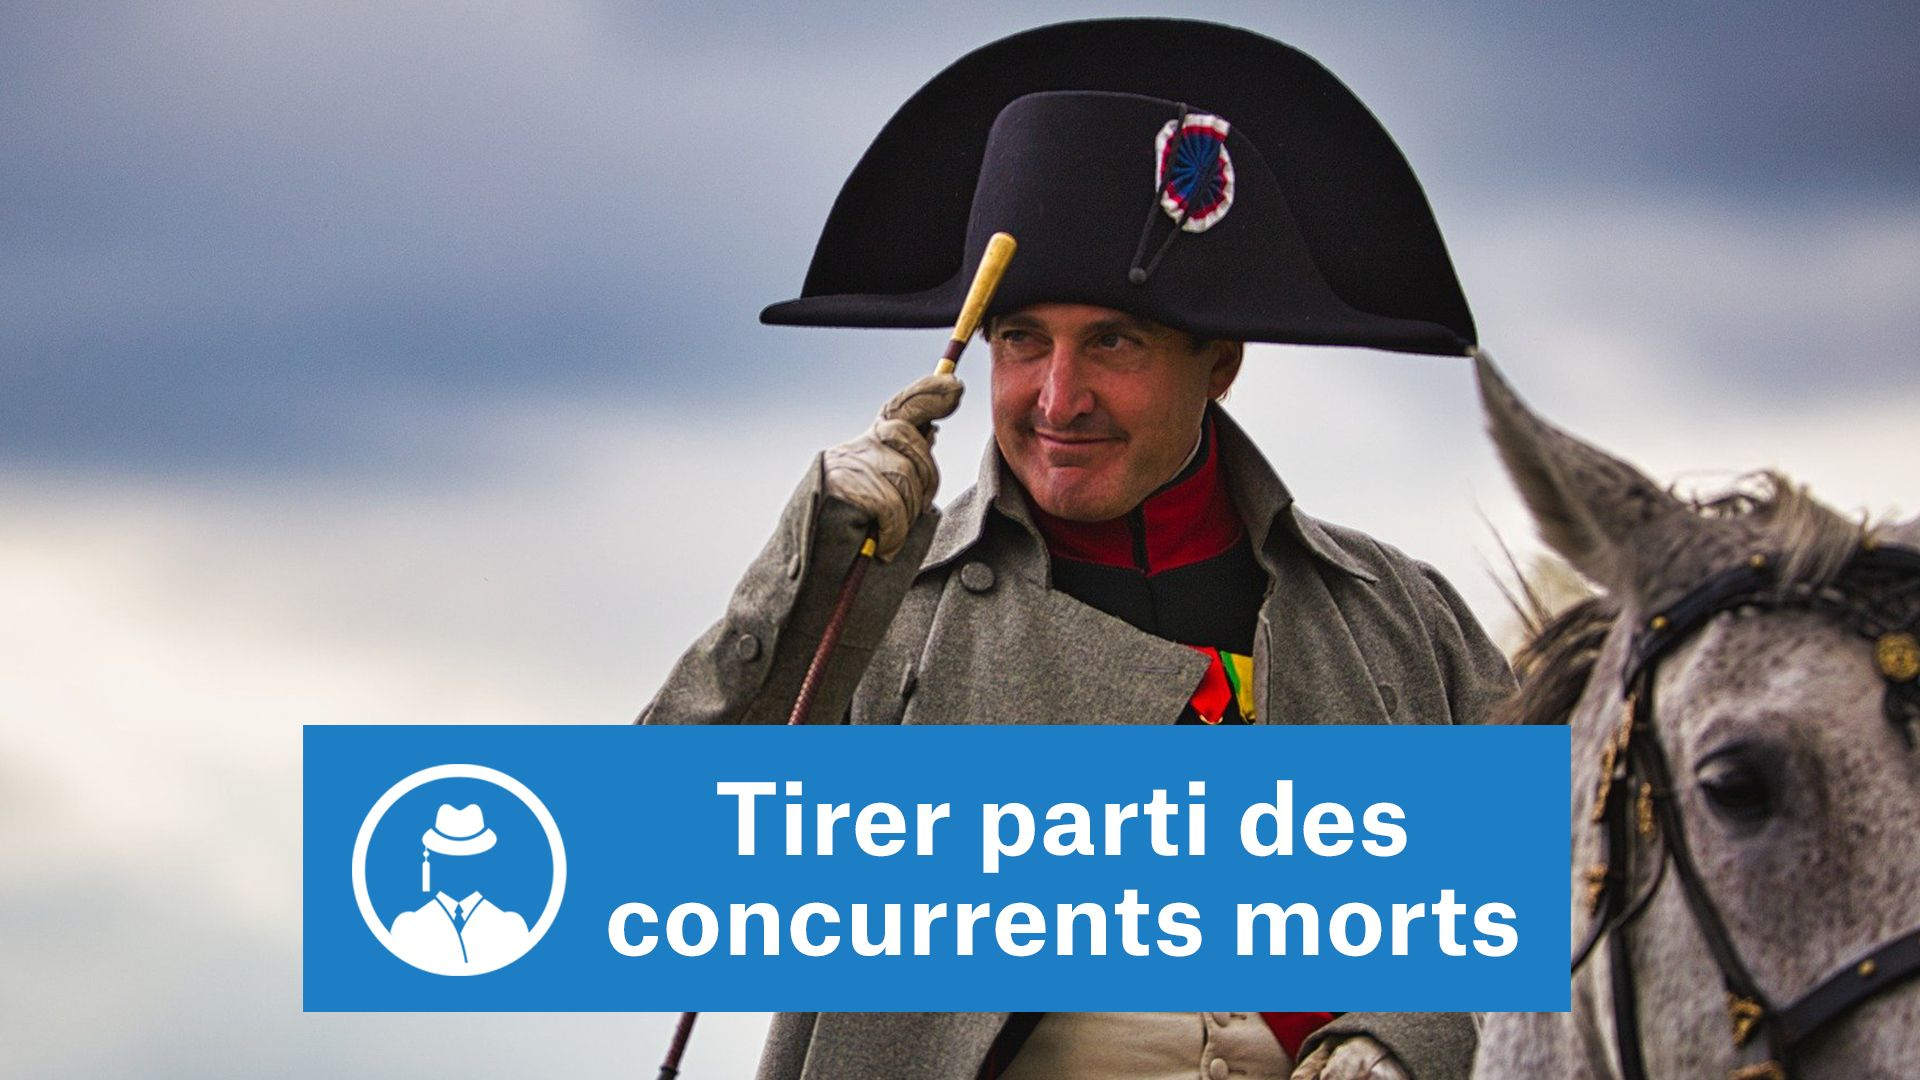 Tirer parti des concurrents morts #GrowthHacking #WebMarketing #FormationGrowthHacking #CentreDeFormationFrance #TunnelAARRR #AARRR #SocialMedia #CommunityManagement #SEO #SiteWeb